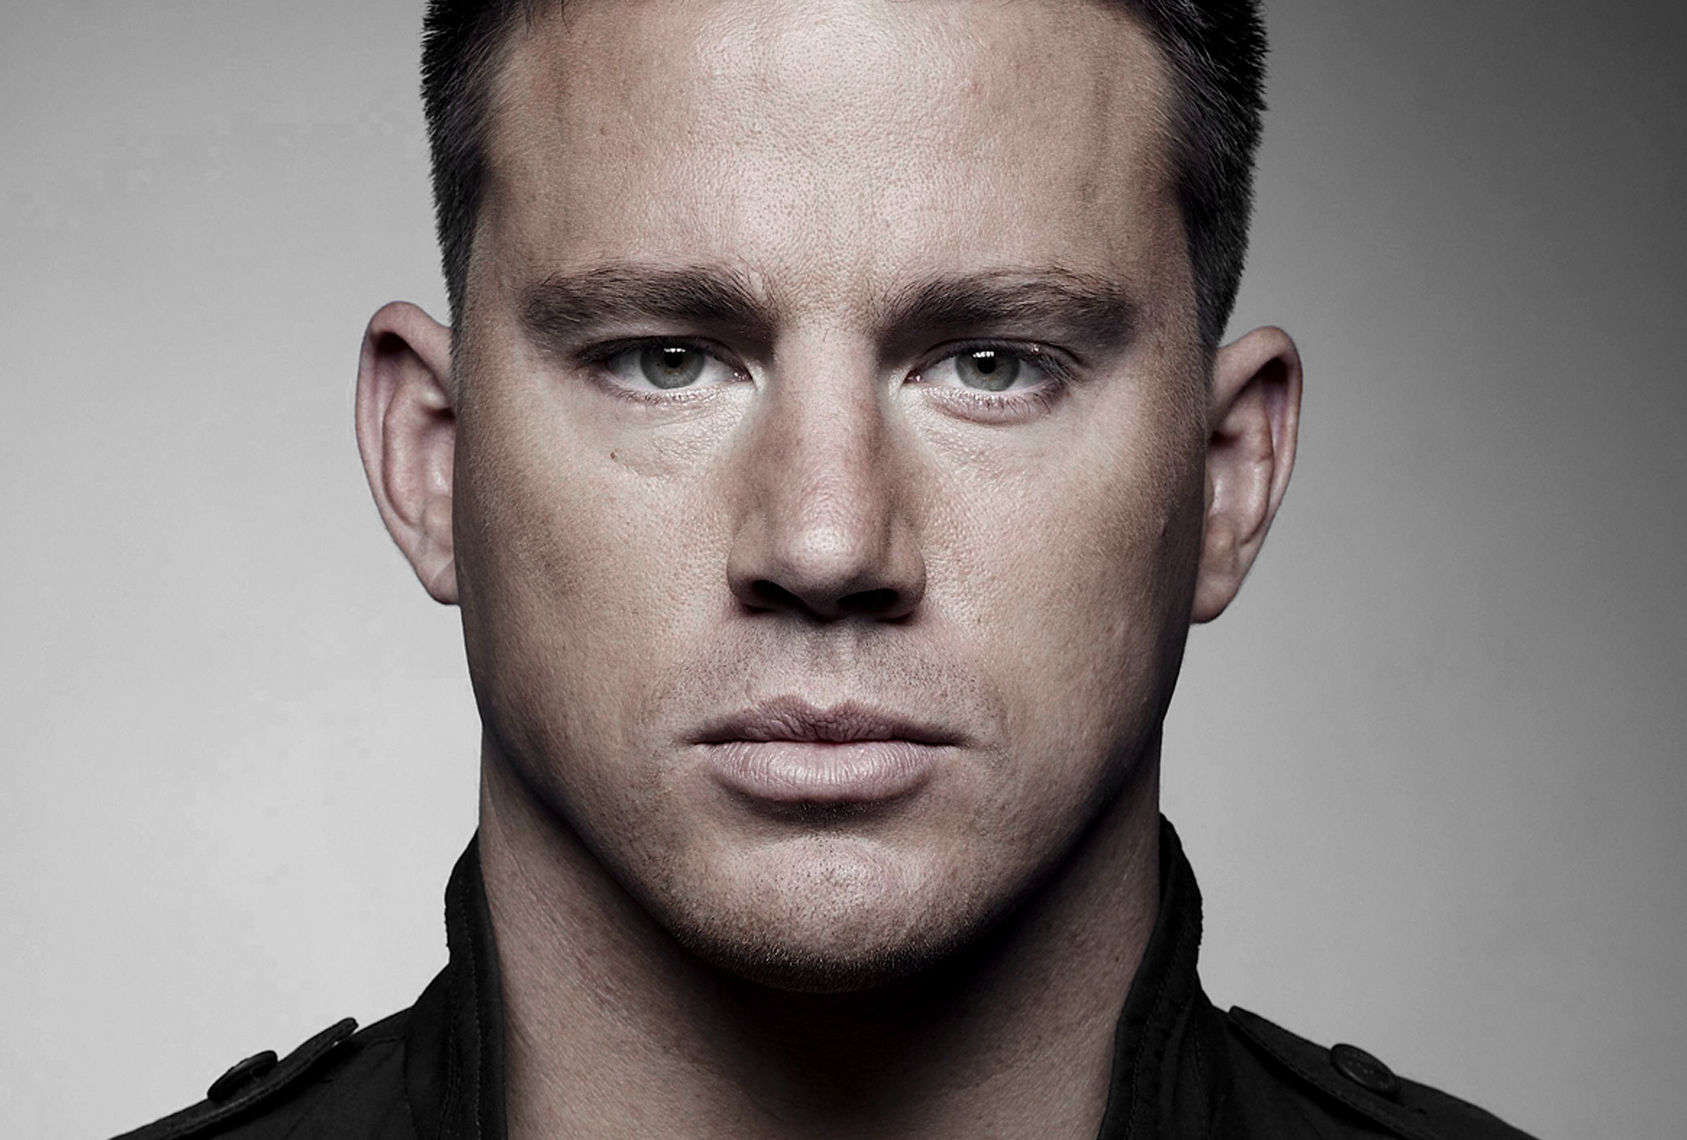 gi-joe_19-channing-blue_0678uniweb